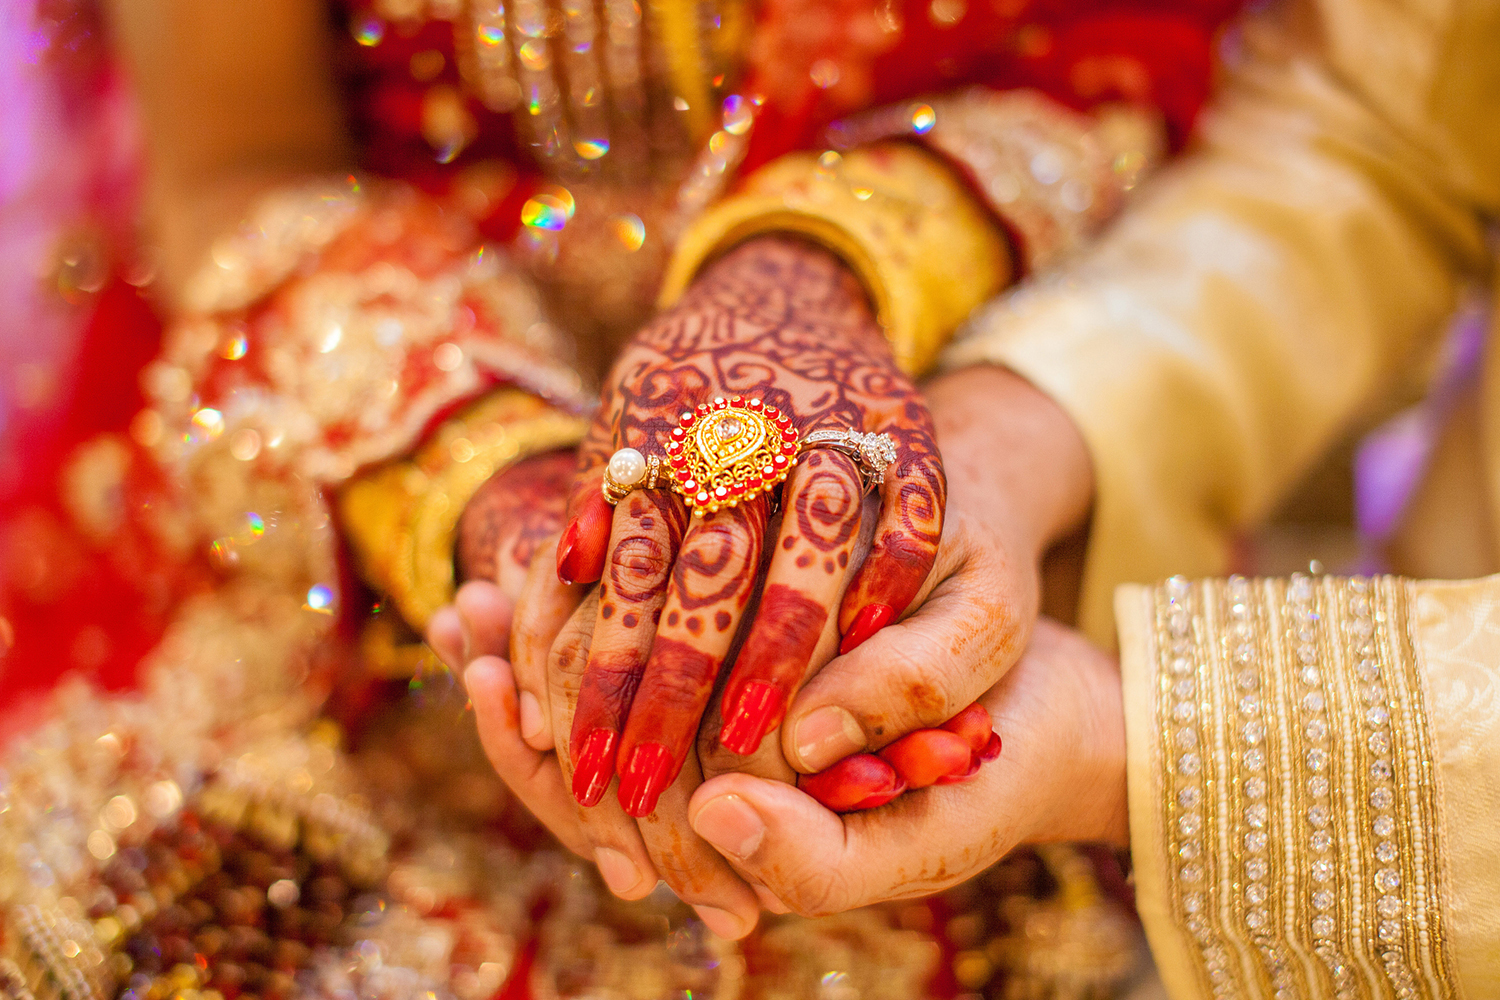 marriage indian married india weddings rituals couples bride before hands happiness performed priest getting front events special season hindu hand